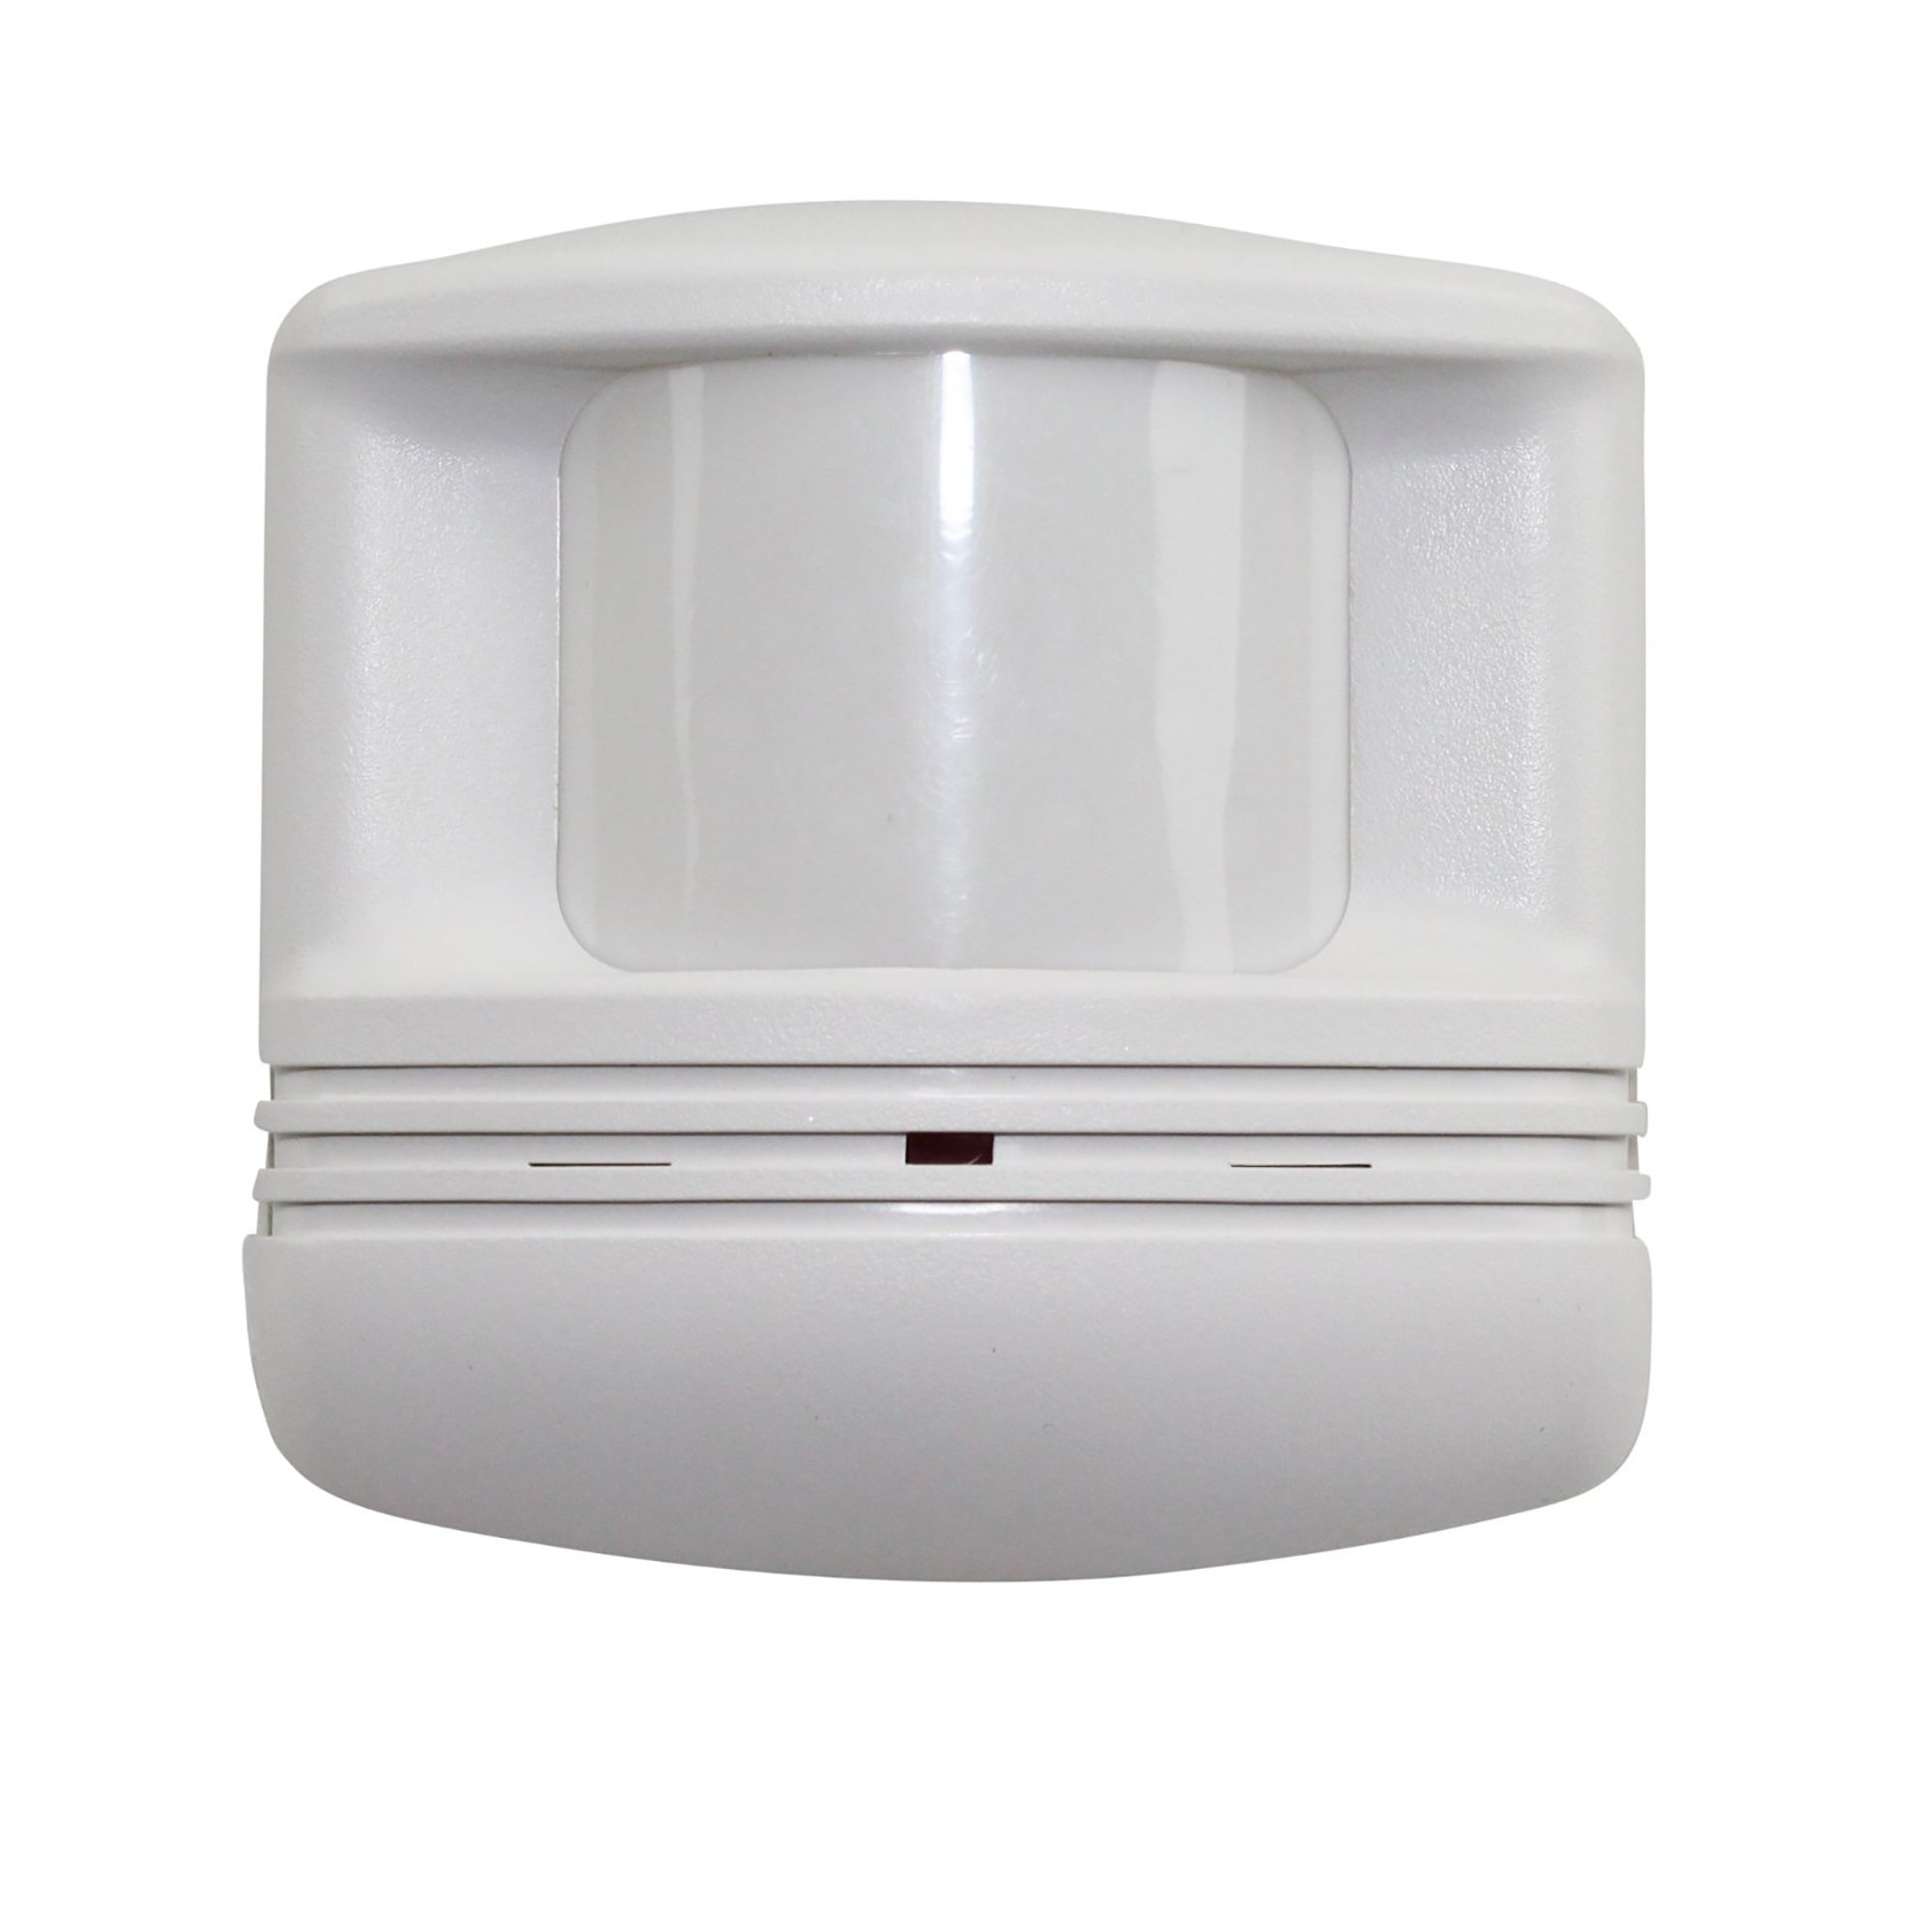 WattStopper CX-100-3 Series Passive Infrared Ceiling Wall Occupancy Sensors PIR 1000 Sq Ft Coverage;